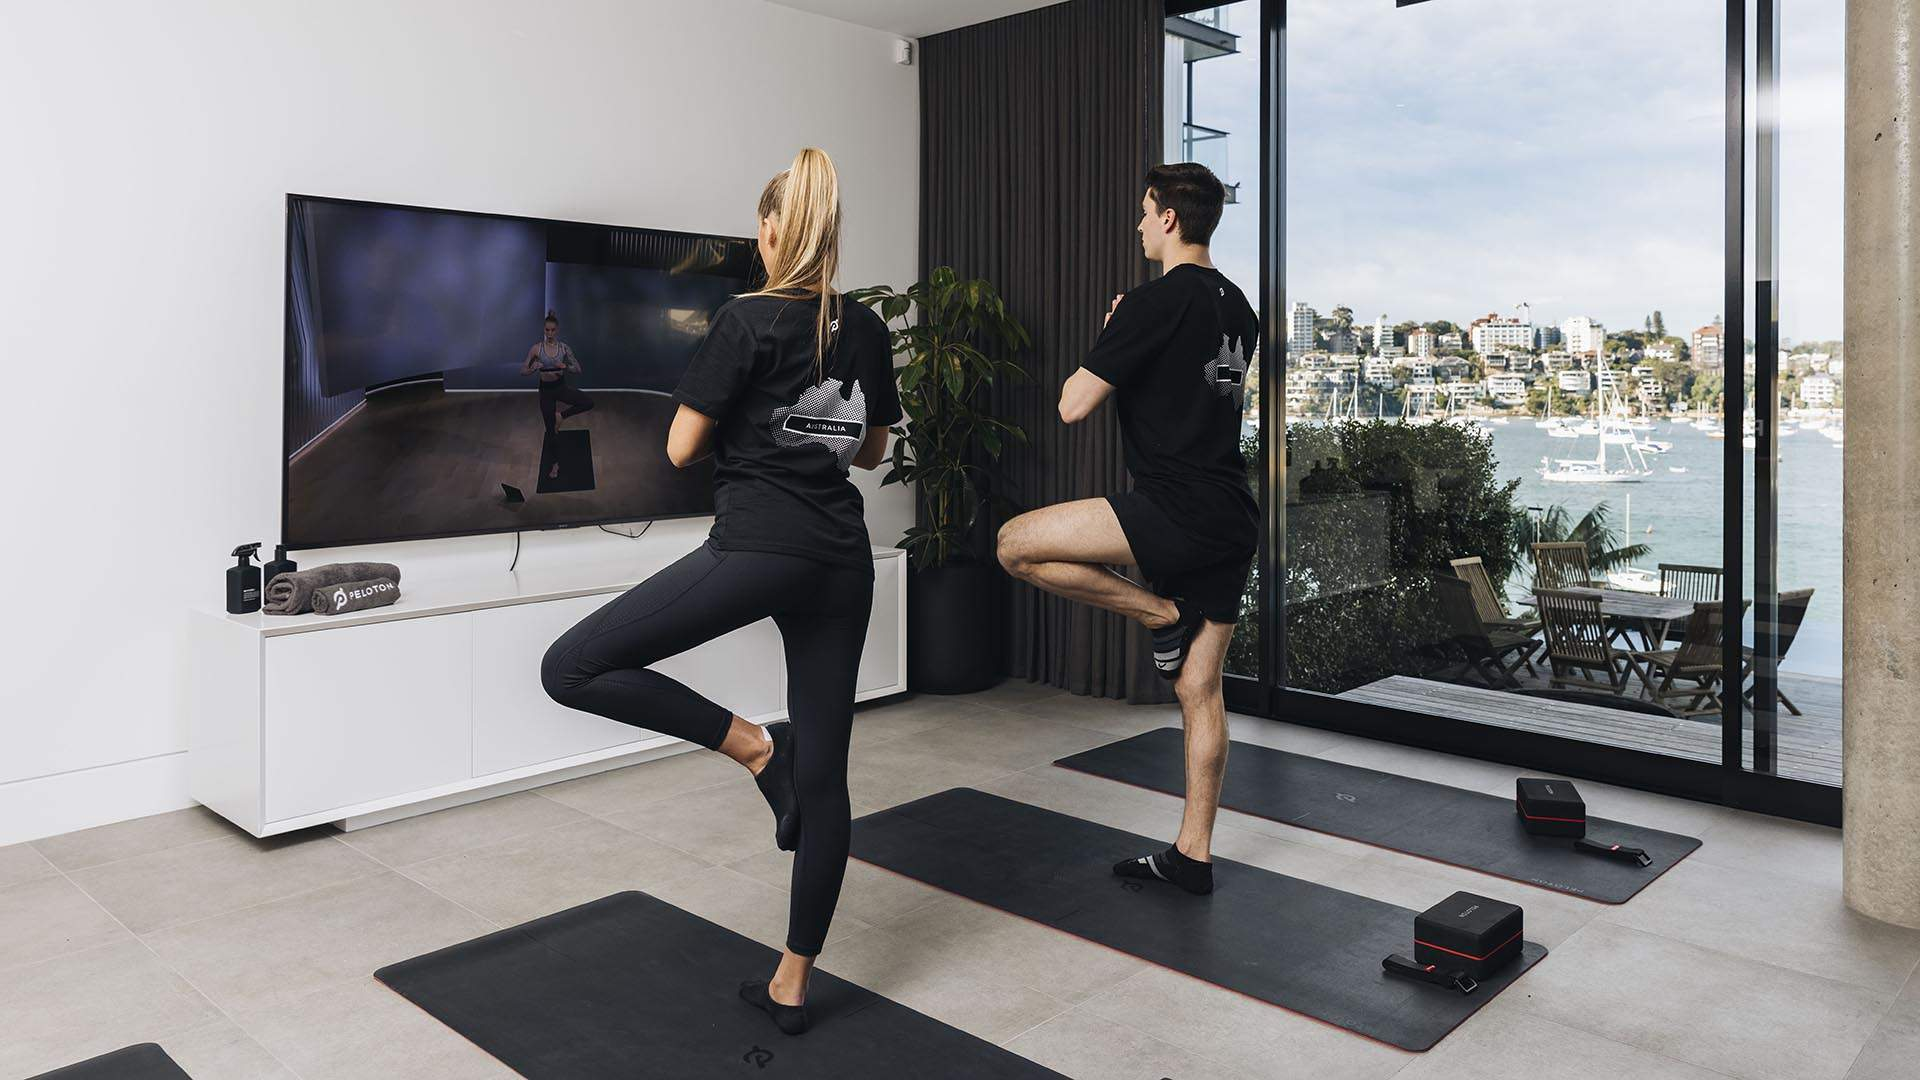 High-End Fitness Brand Peloton Has Started Streaming Its Instructor-Led Workouts in Australia